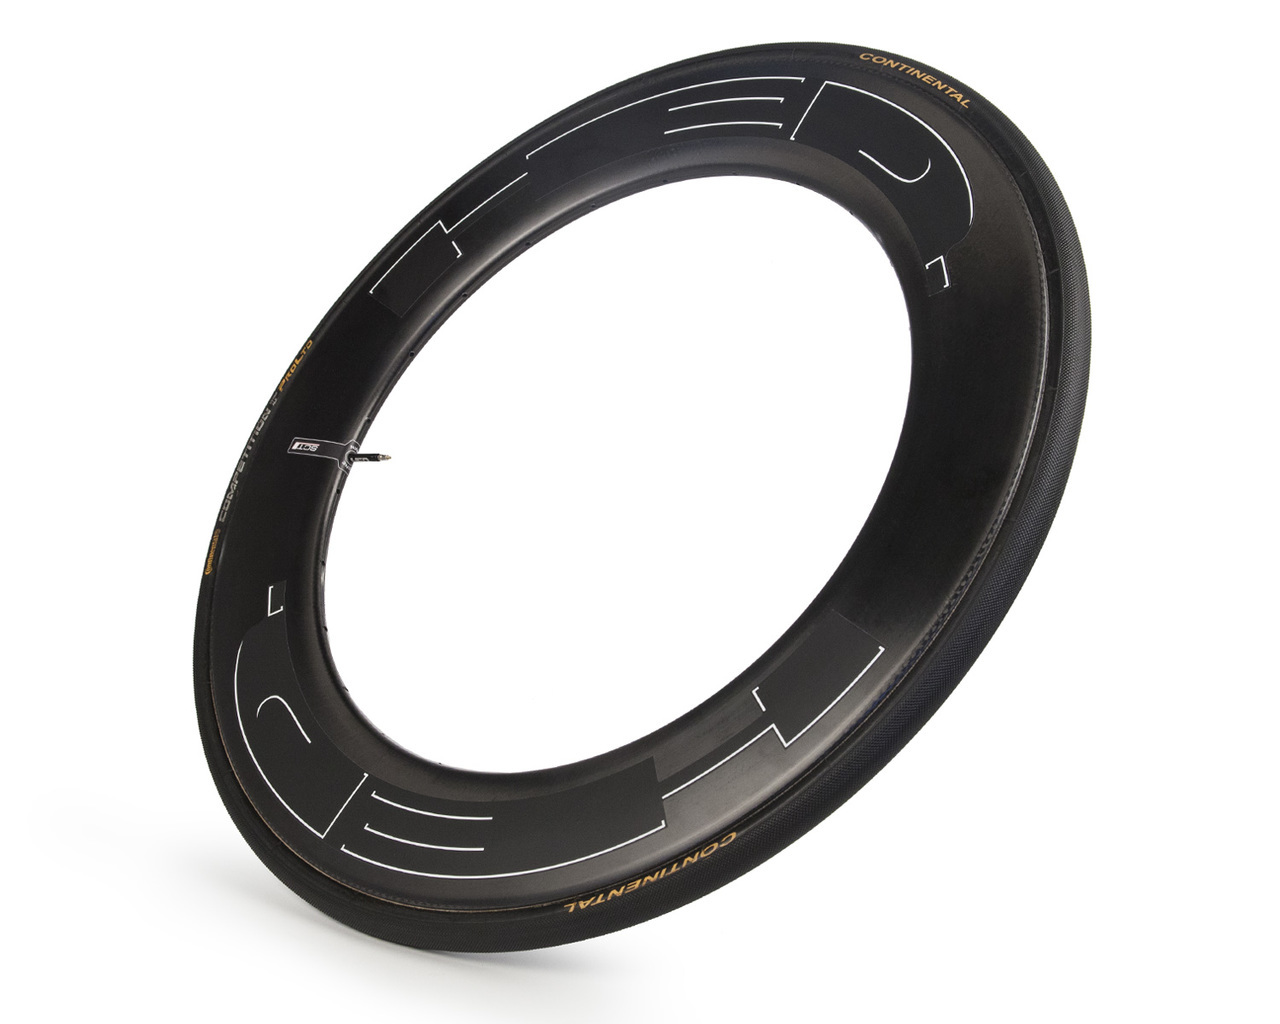 Hed Cycling is offering several sizes of their Stinger hoops in disc and rim braking options.